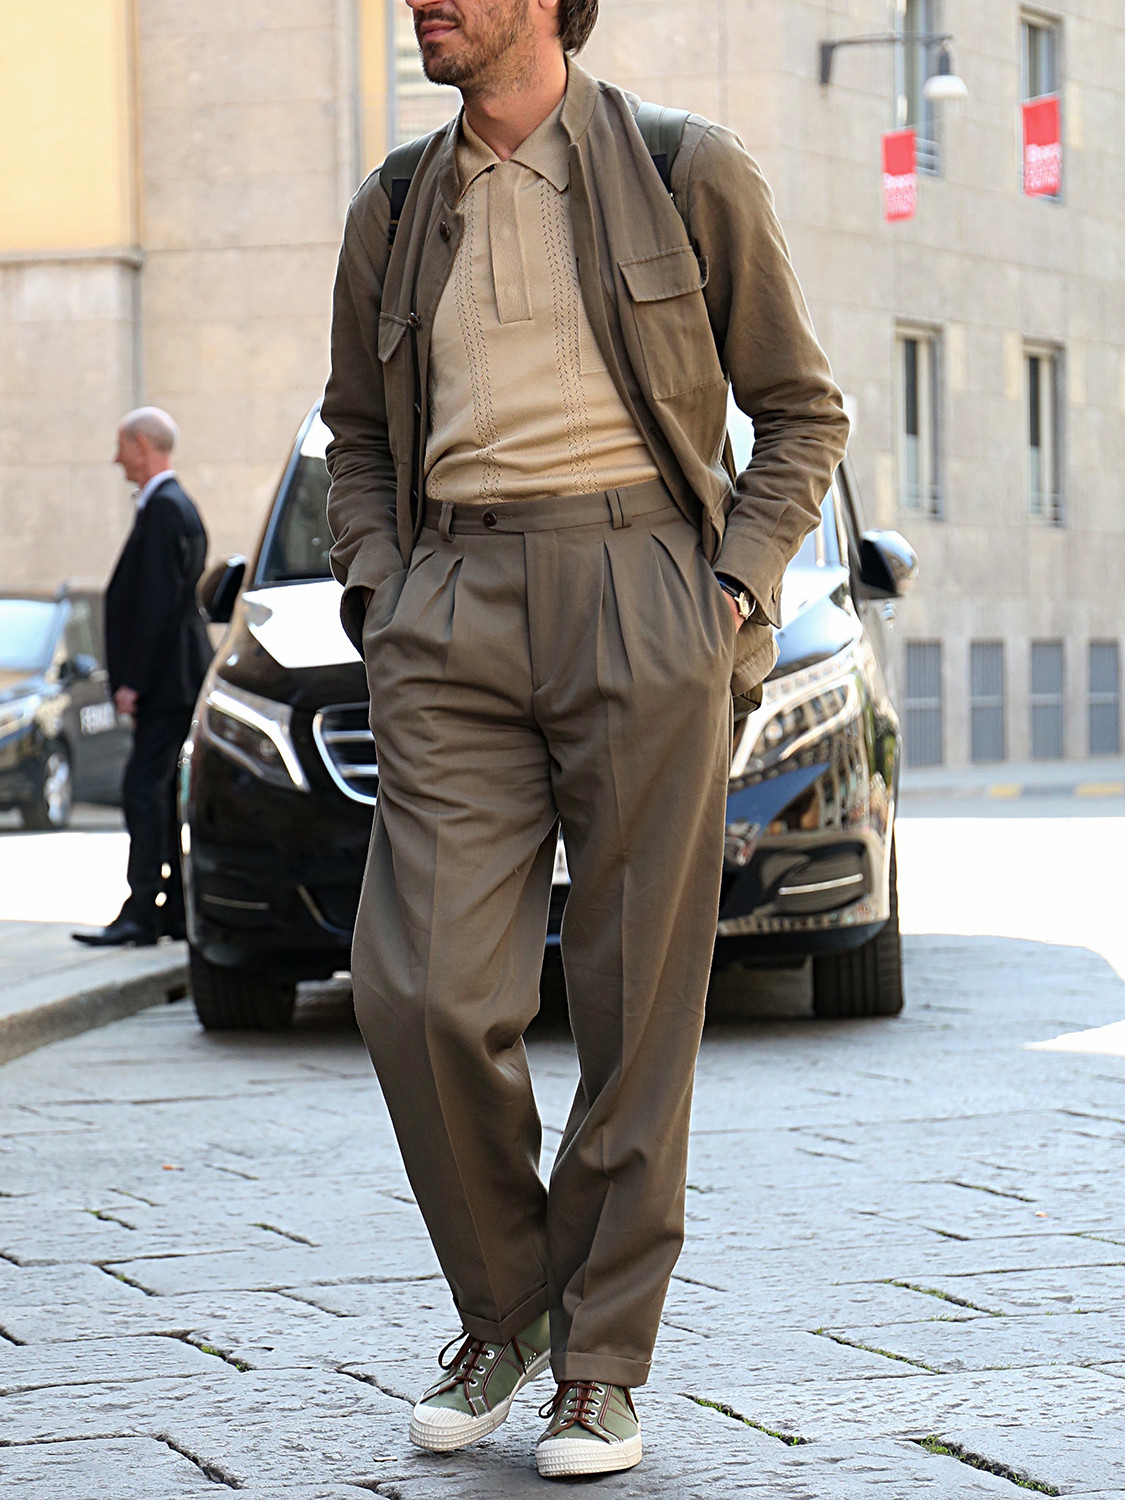 Men's outfit idea for 2021 with neutral harrington jacket, neutral plain short-sleeved polo, neutral chinos, green rucksack, neutral trainers. Suitable for spring, summer and autumn.